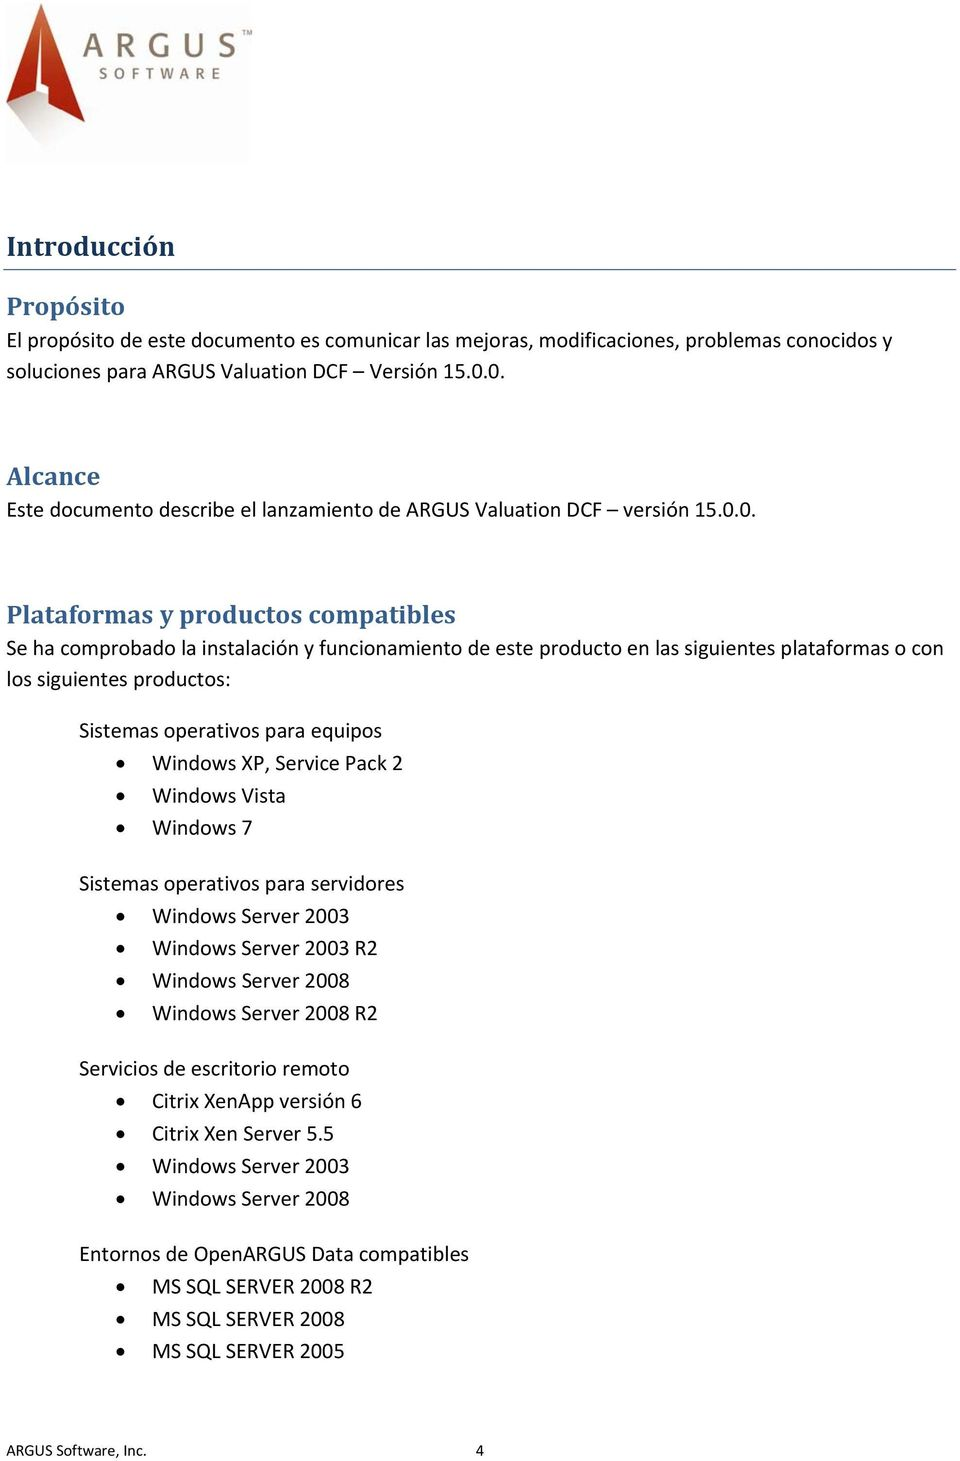 siguientes plataformas o con los siguientes productos: Sistemas operativos para equipos Windows XP, Service Pack 2 Windows Vista Windows 7 Sistemas operativos para servidores Windows Server 2003